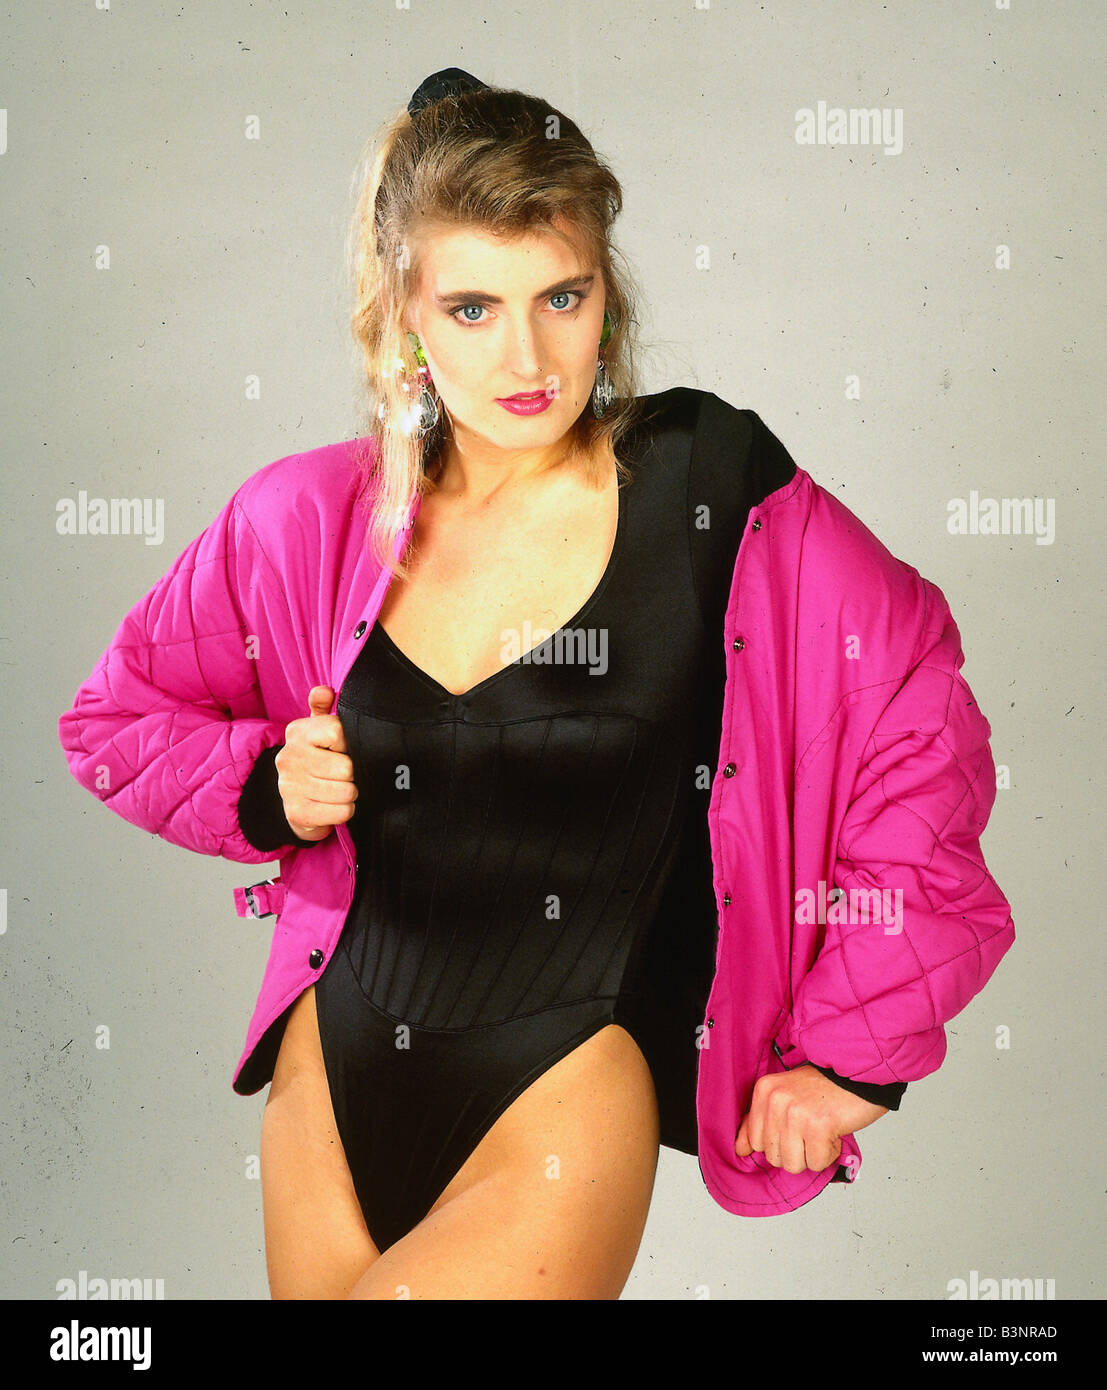 1990s Fashion Stock Photos   1990s Fashion Stock Images   Alamy Jacket Fashion model wears pink padded bomber jacket April 1991 black  bodysuit   Stock Image